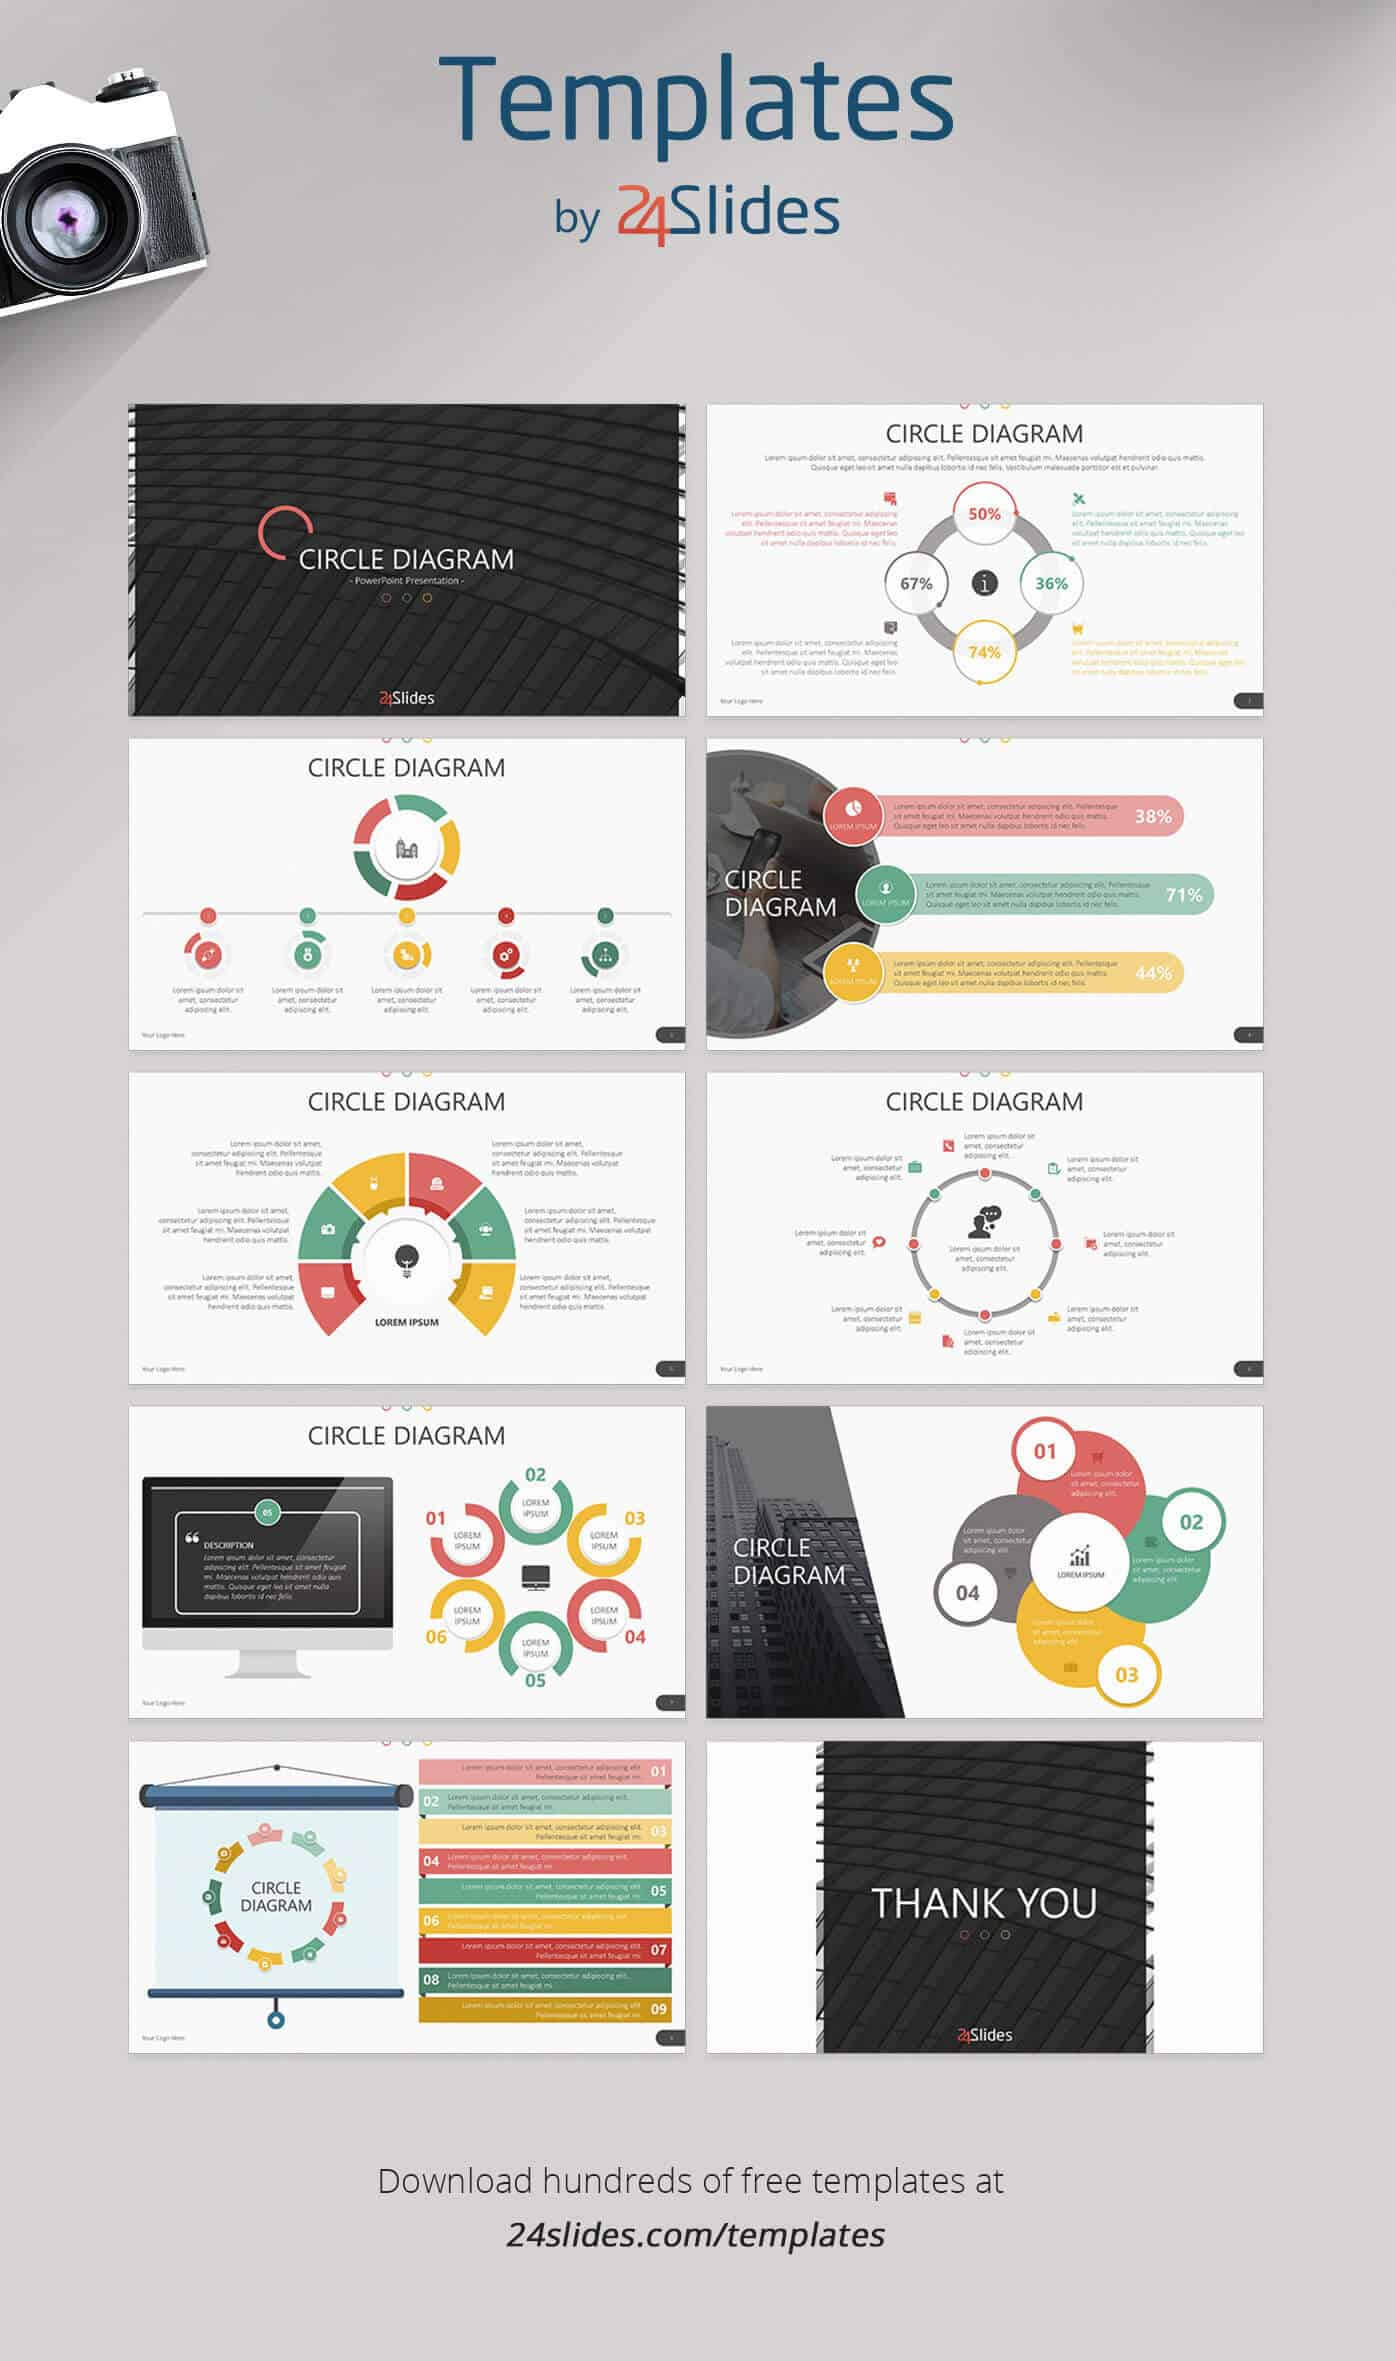 15 Fun And Colorful Free Powerpoint Templates | Present Better Throughout Fun Powerpoint Templates Free Download